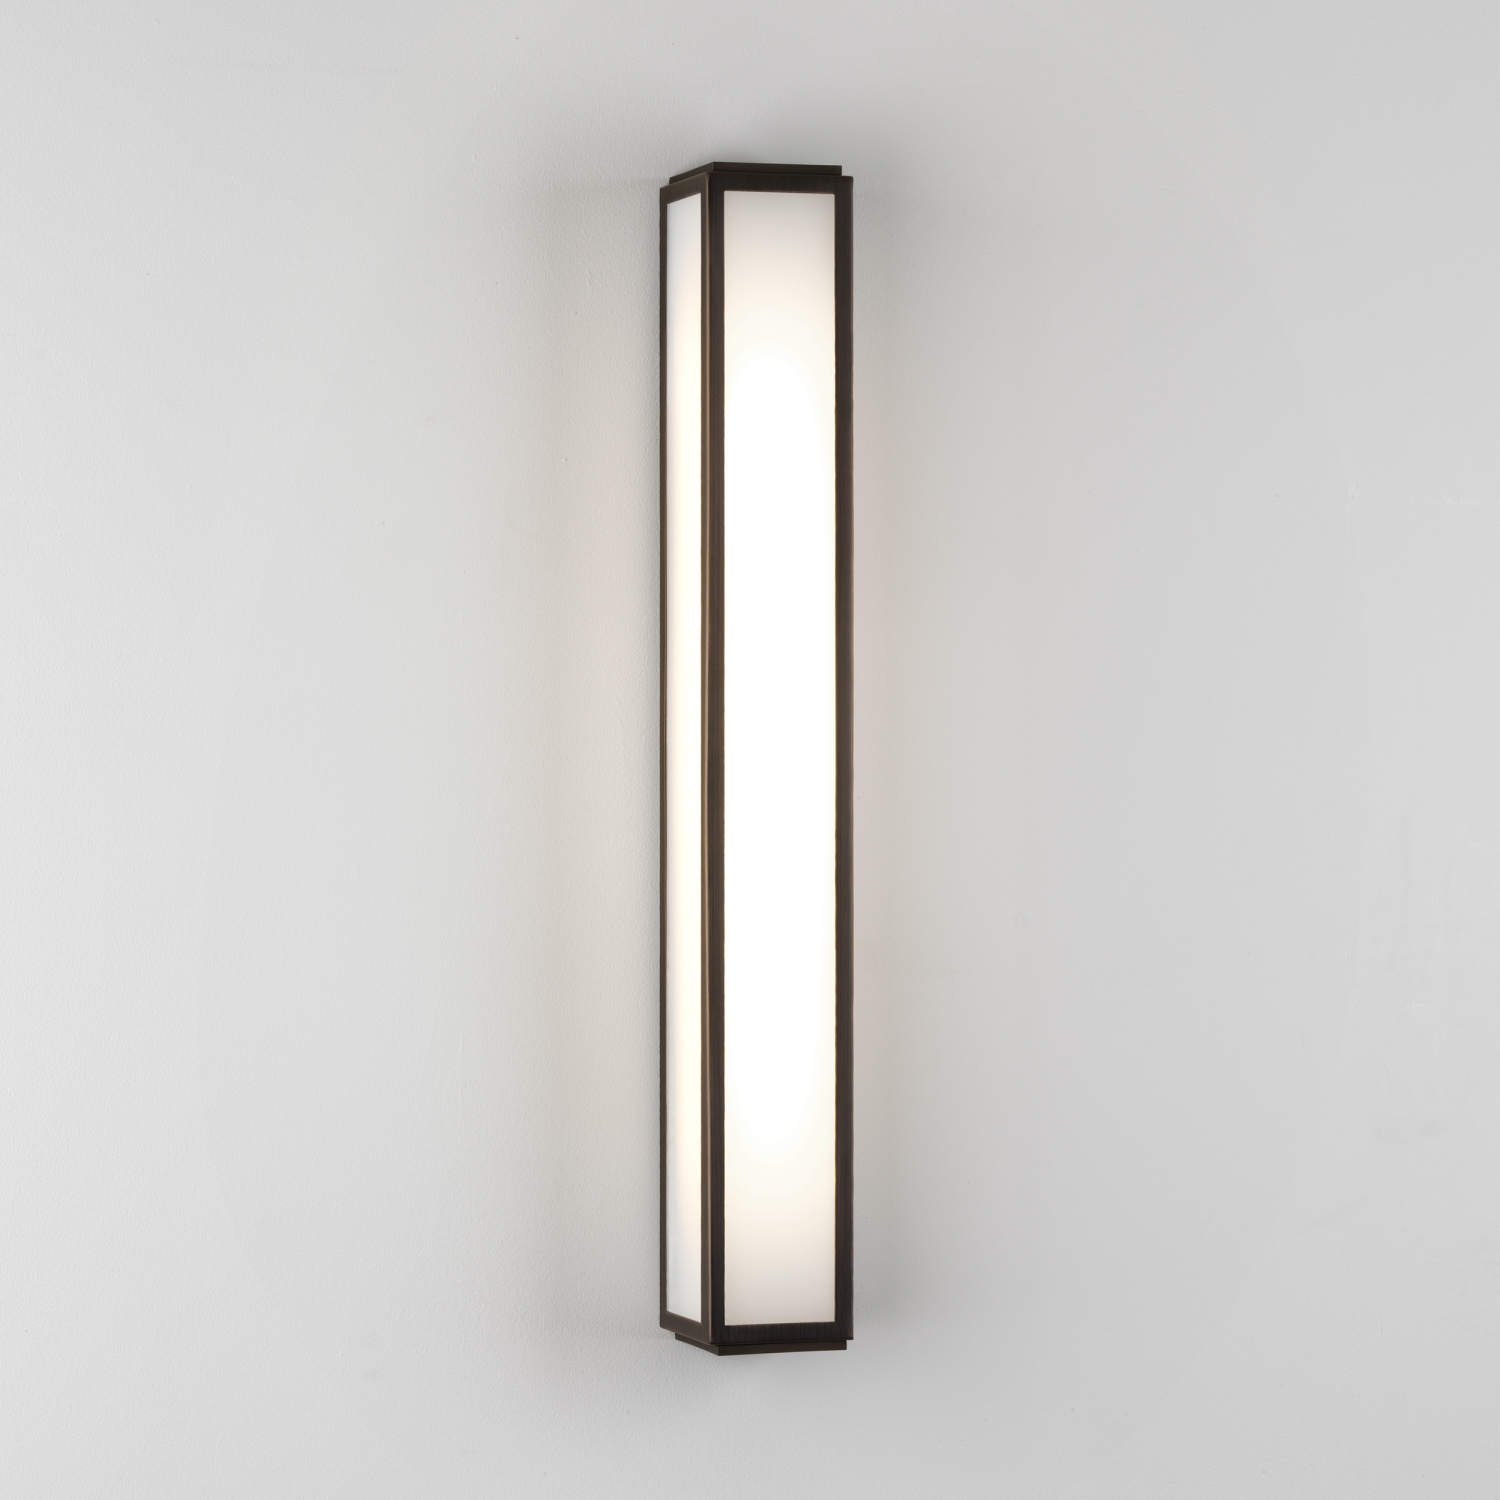 ASTRO Mashiko 600 Bathroom LED wall light 10.8W LED 3000K warm white Thumbnail 1